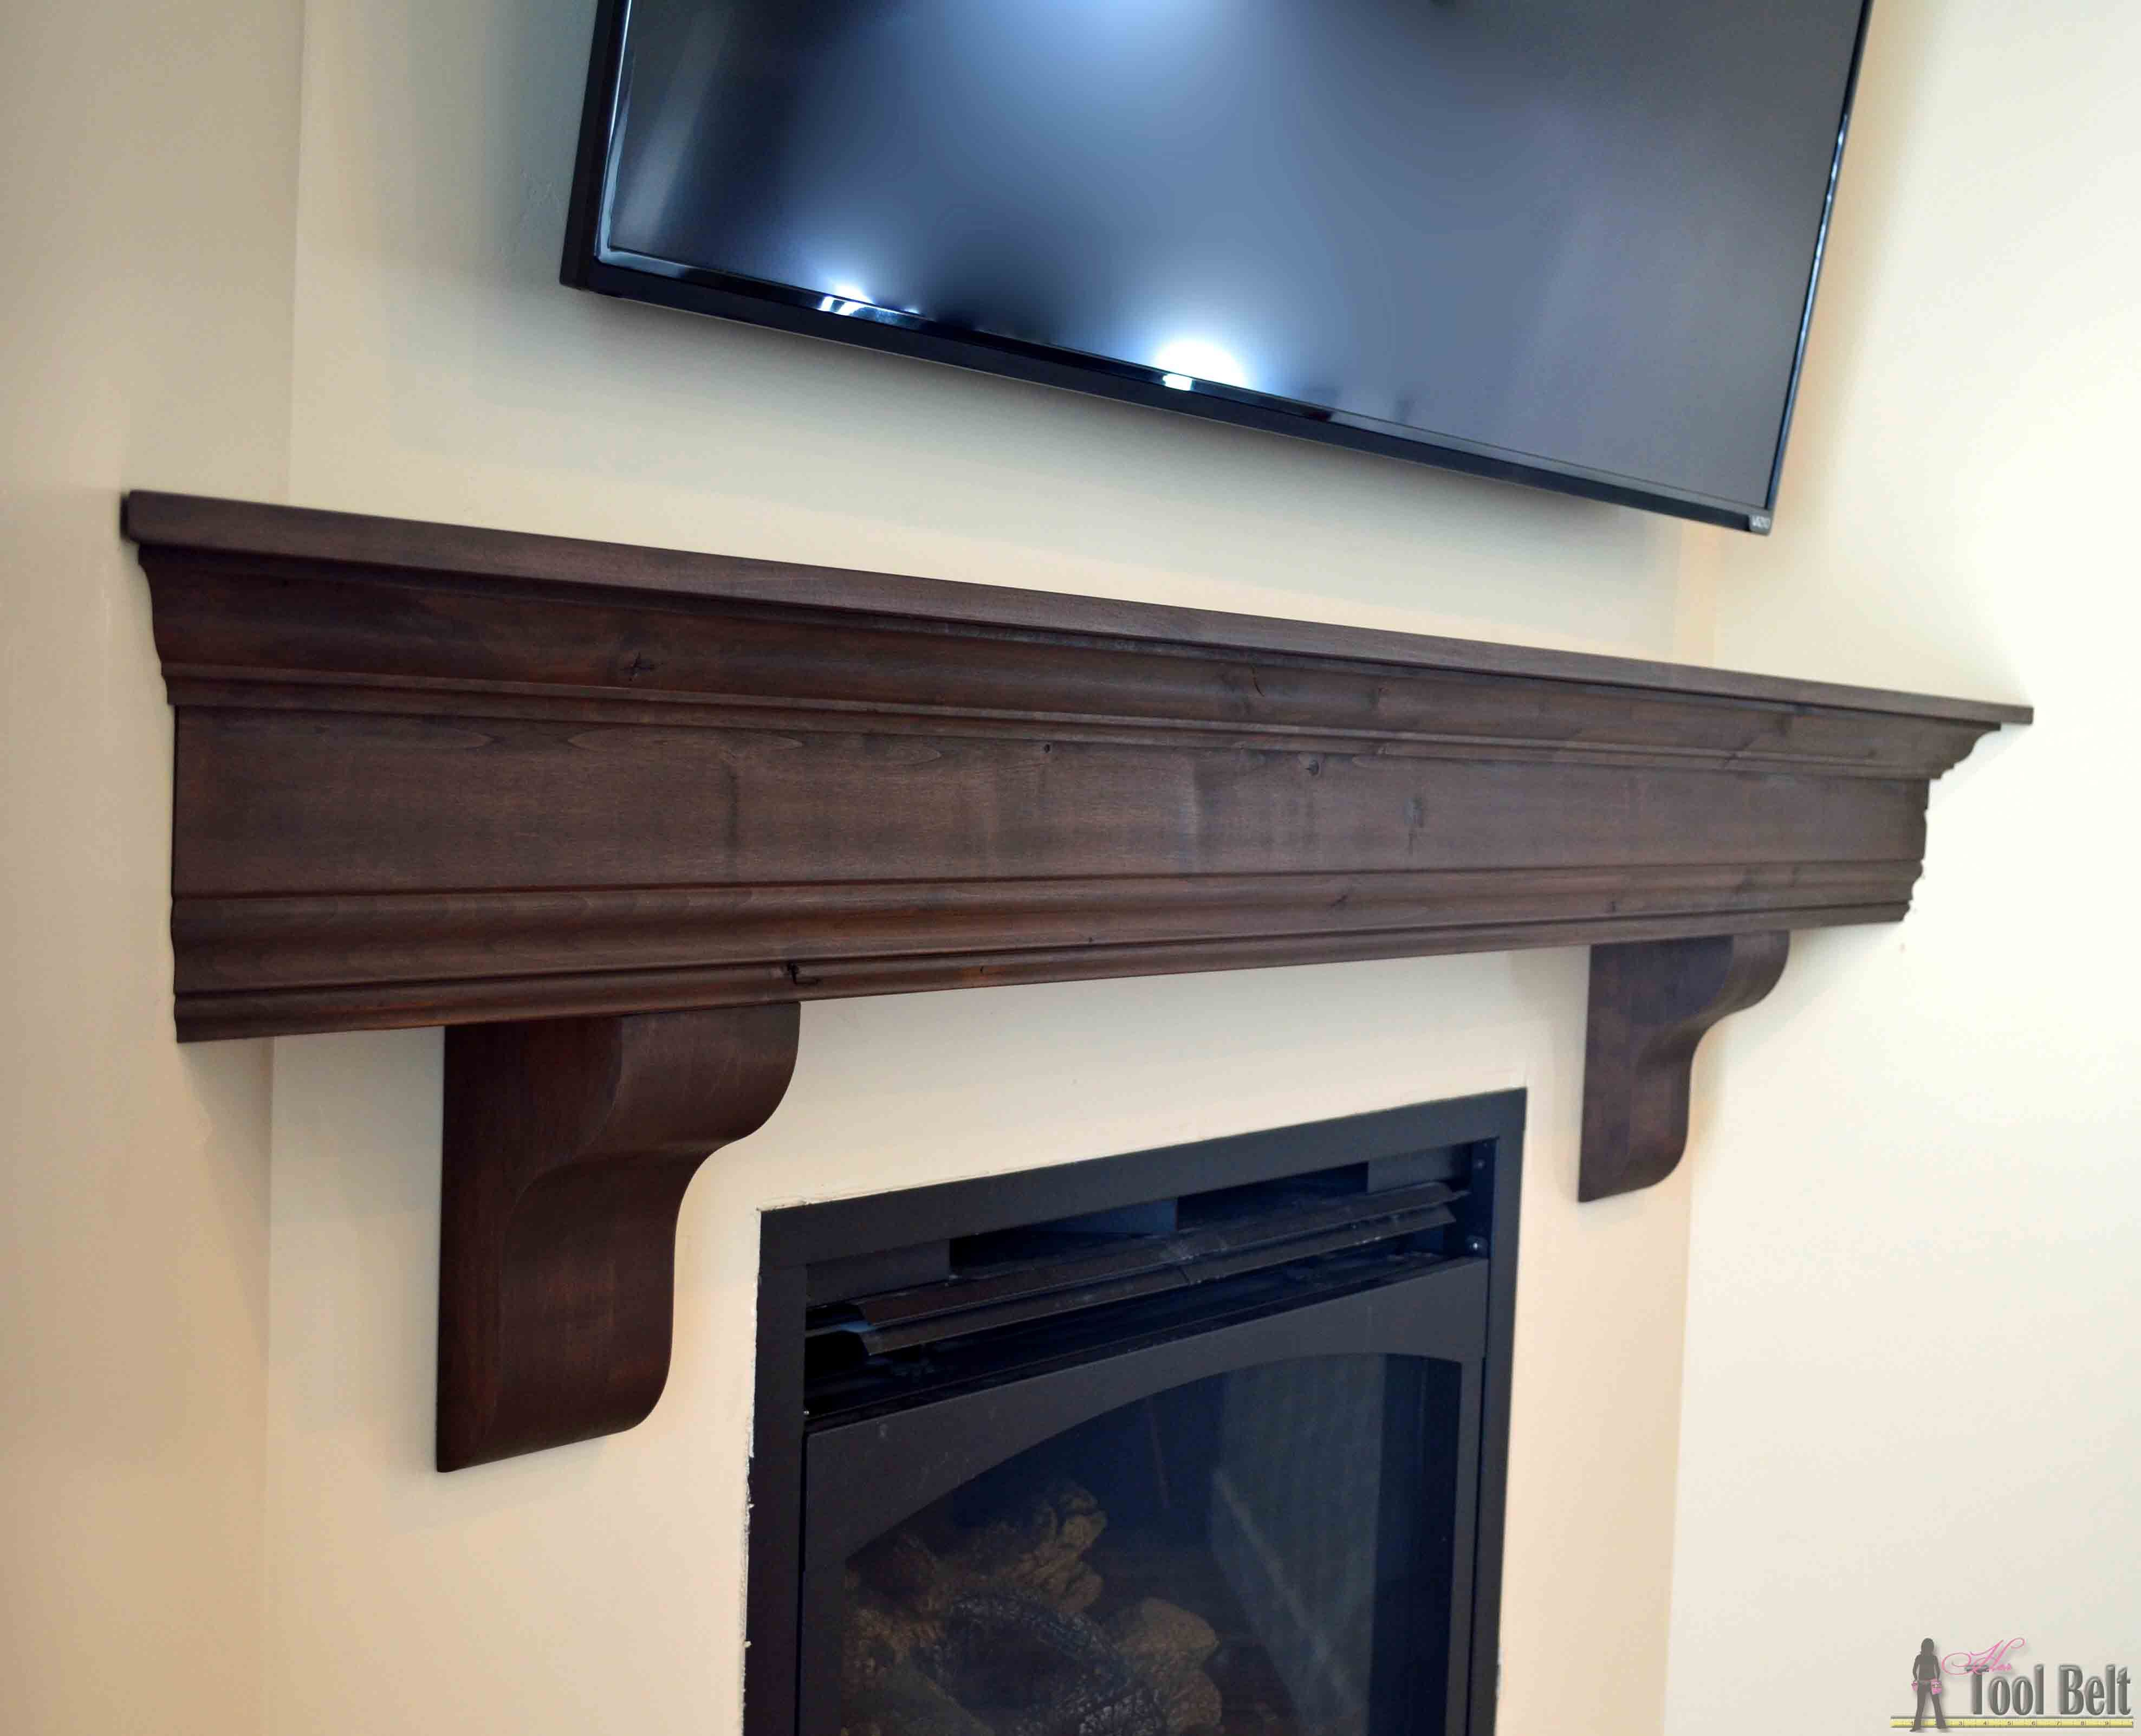 Diy fireplace mantel shelf diy fireplace mantel mantel shelf and create that room focal point that youve been dreaming about diy fireplace mantel solutioingenieria Images